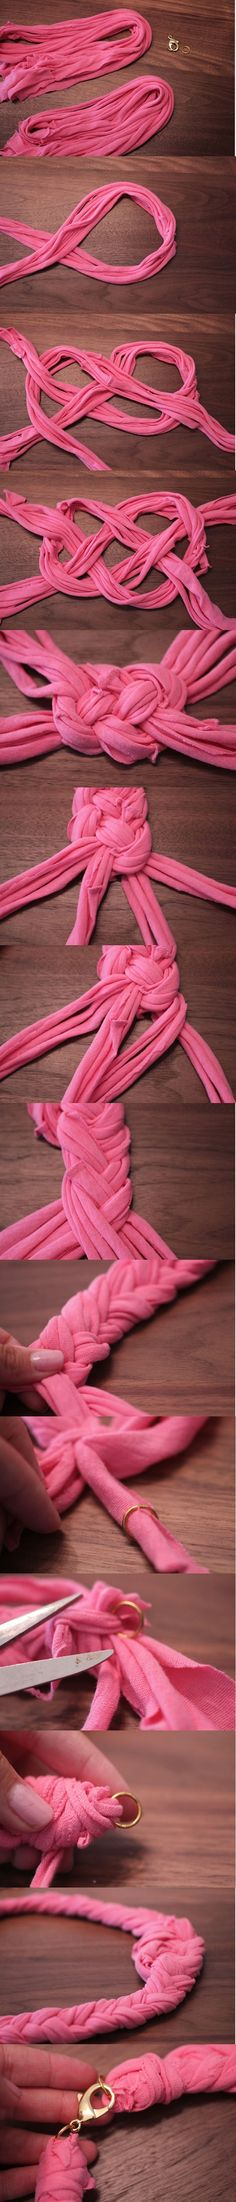 DIY: Use Your Old T-Shirt To Make Necklace.